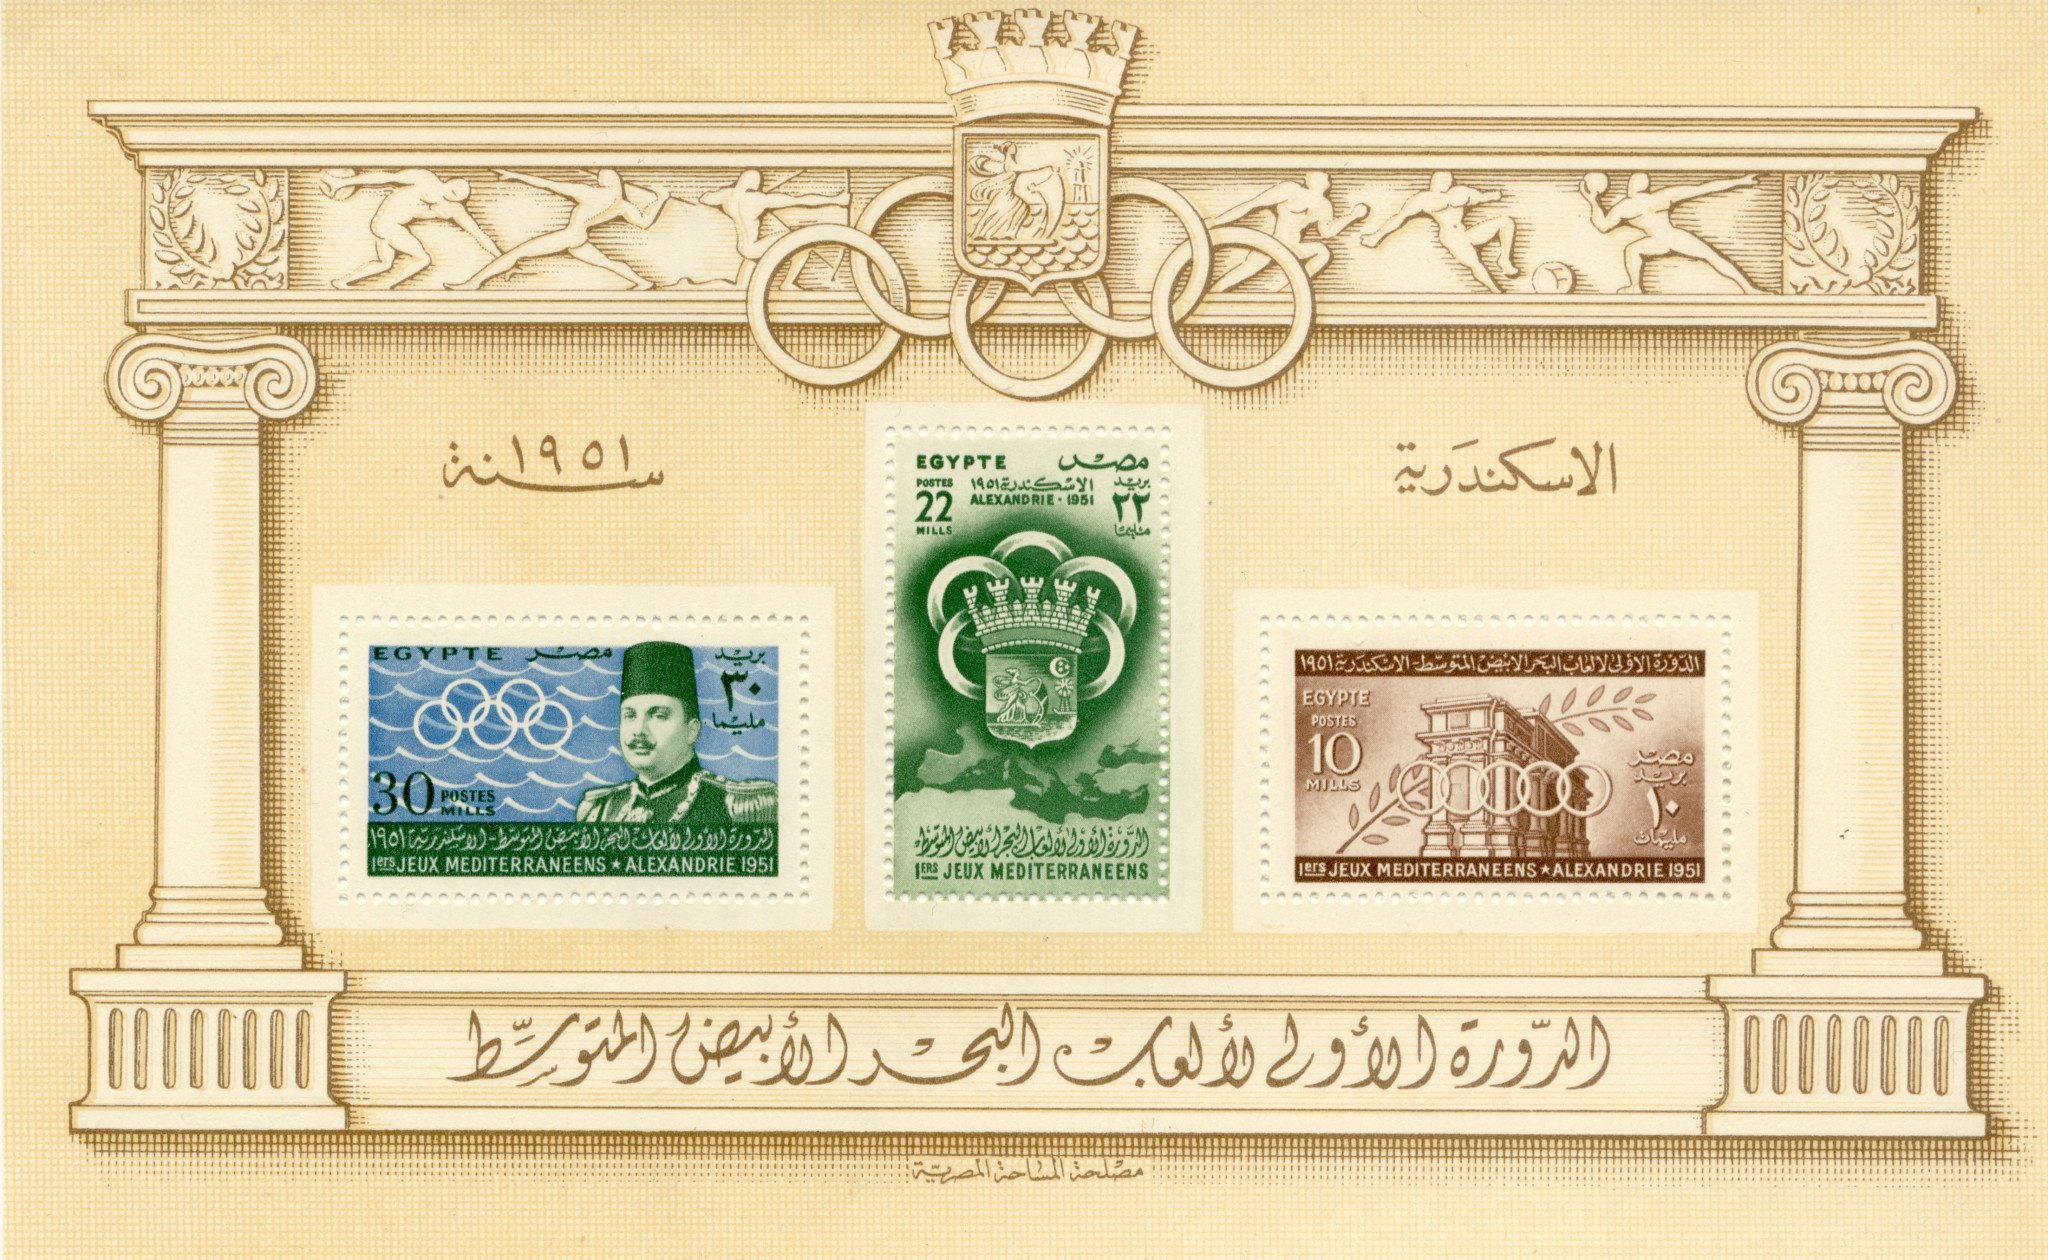 A stamp issued to mark the first edition of the Mediterranean Games in 1951 ©Philip Barker